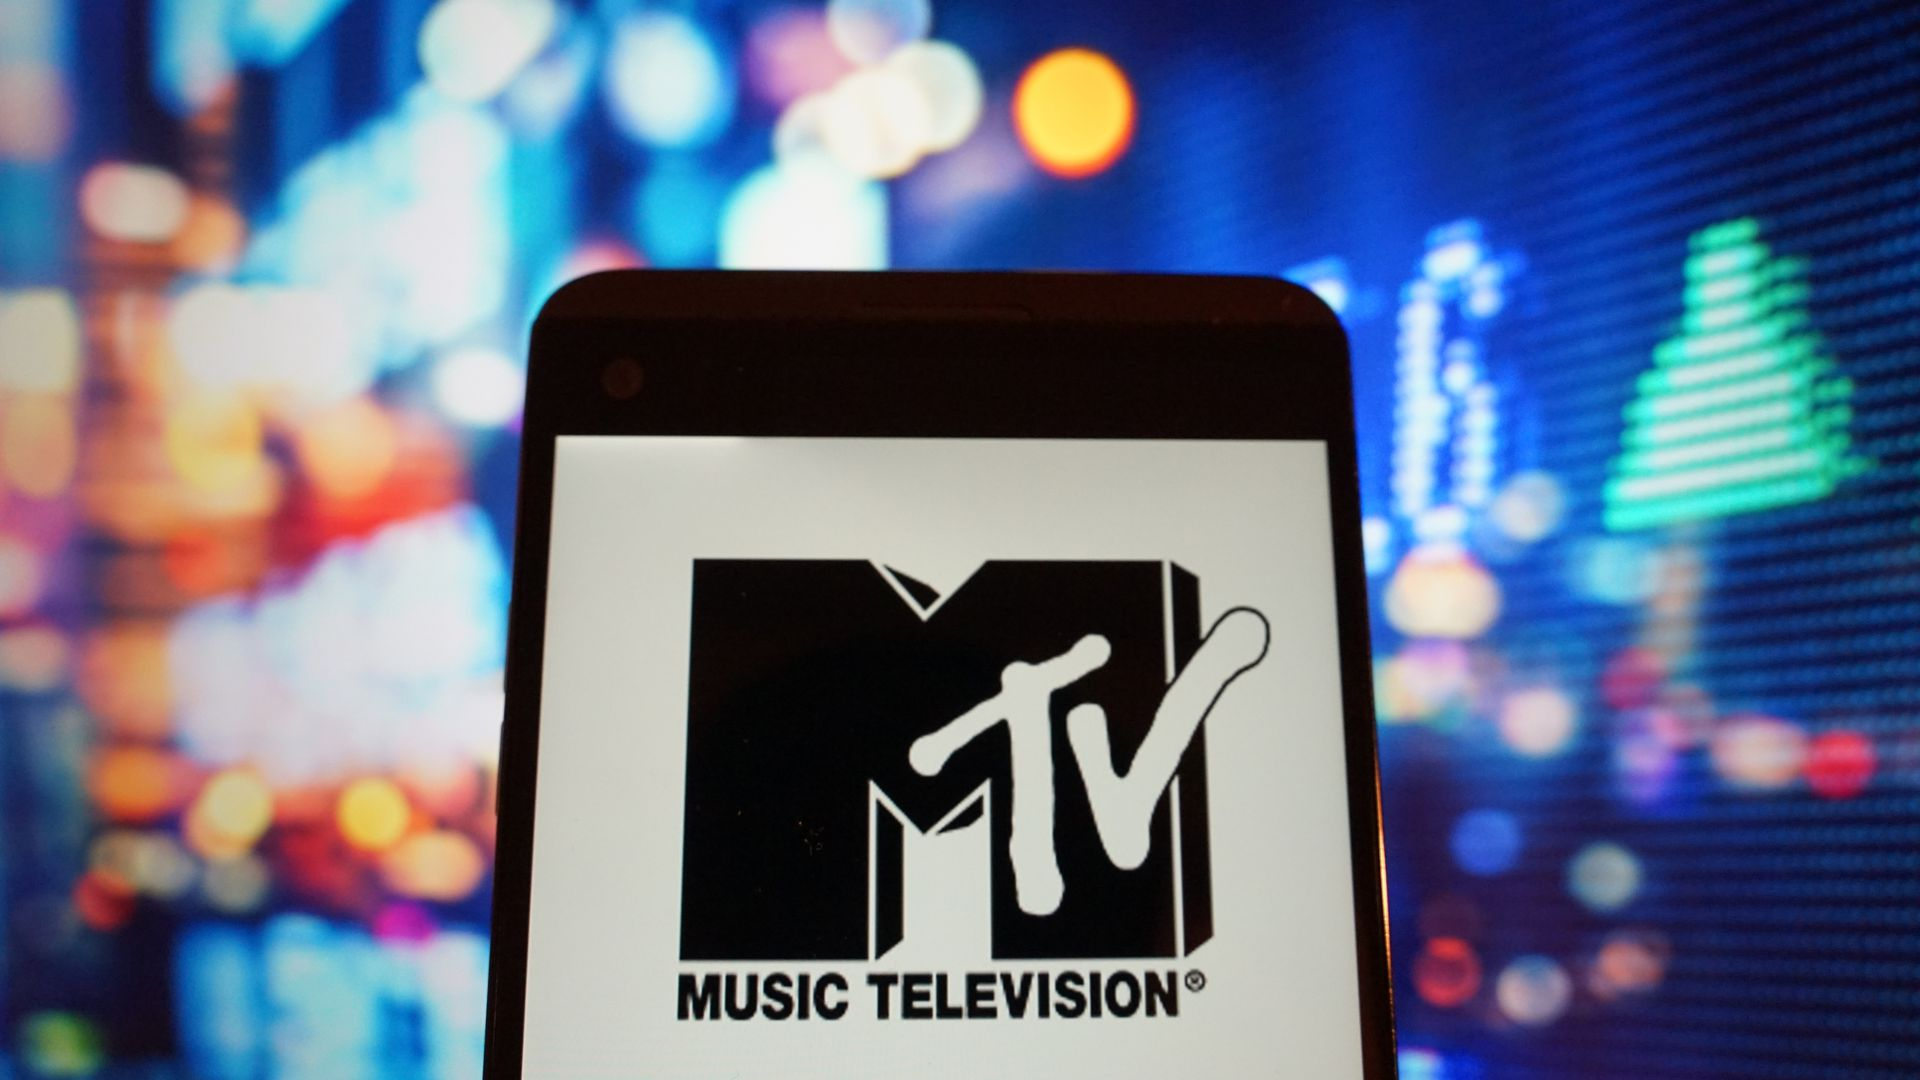 MTV logo on a phone screen